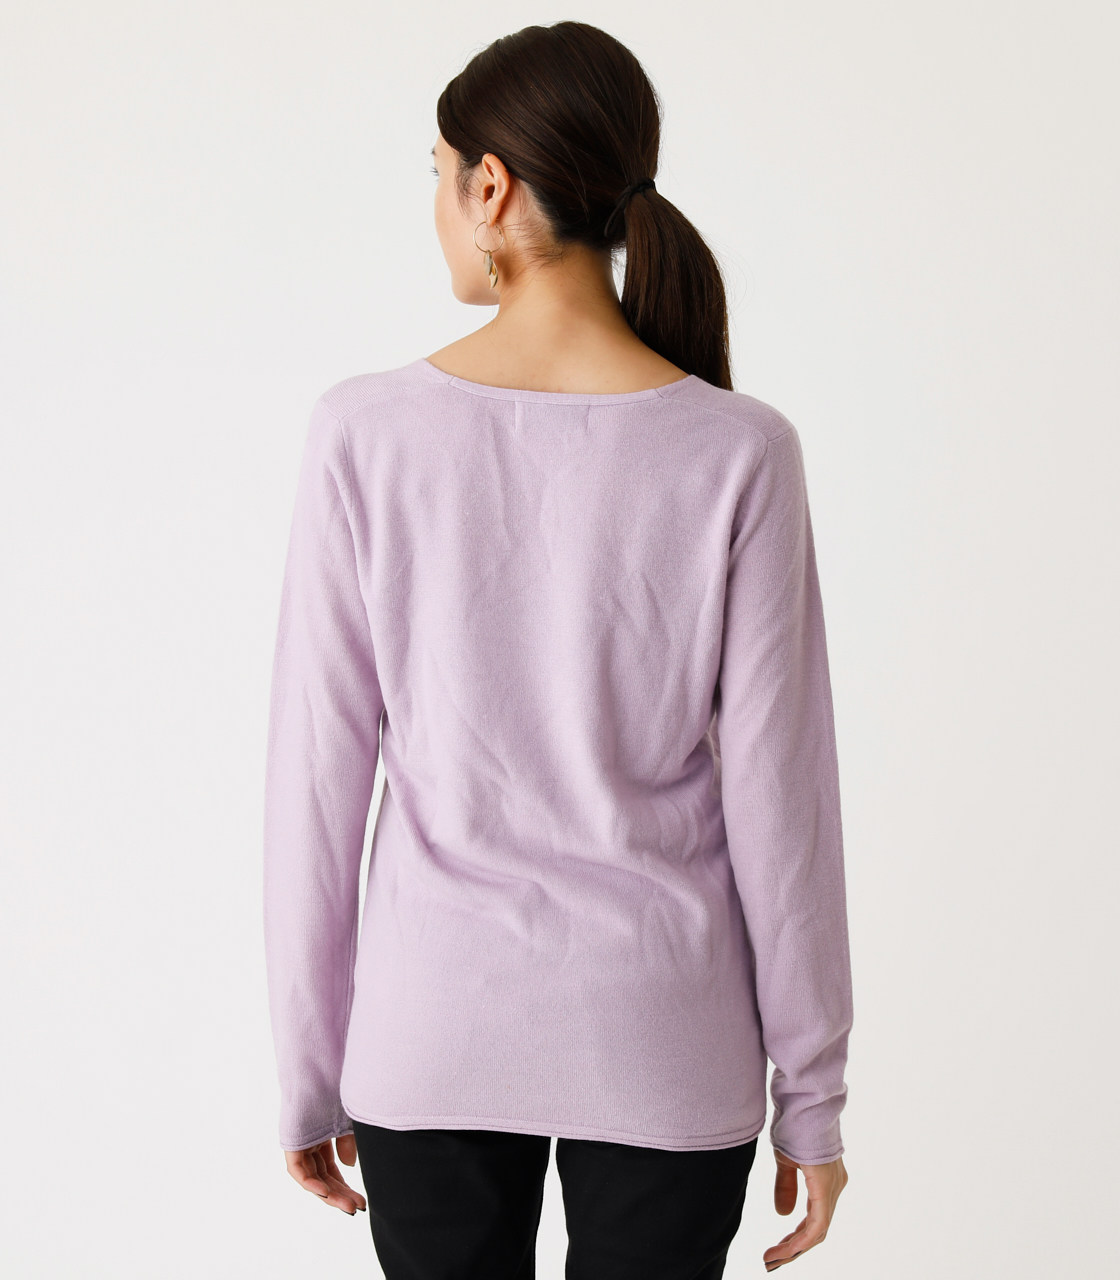 NUDIE V/N KNIT TOPS Ⅲ/ヌーディーVネックニットトップスⅢ 詳細画像 L/PUR 6